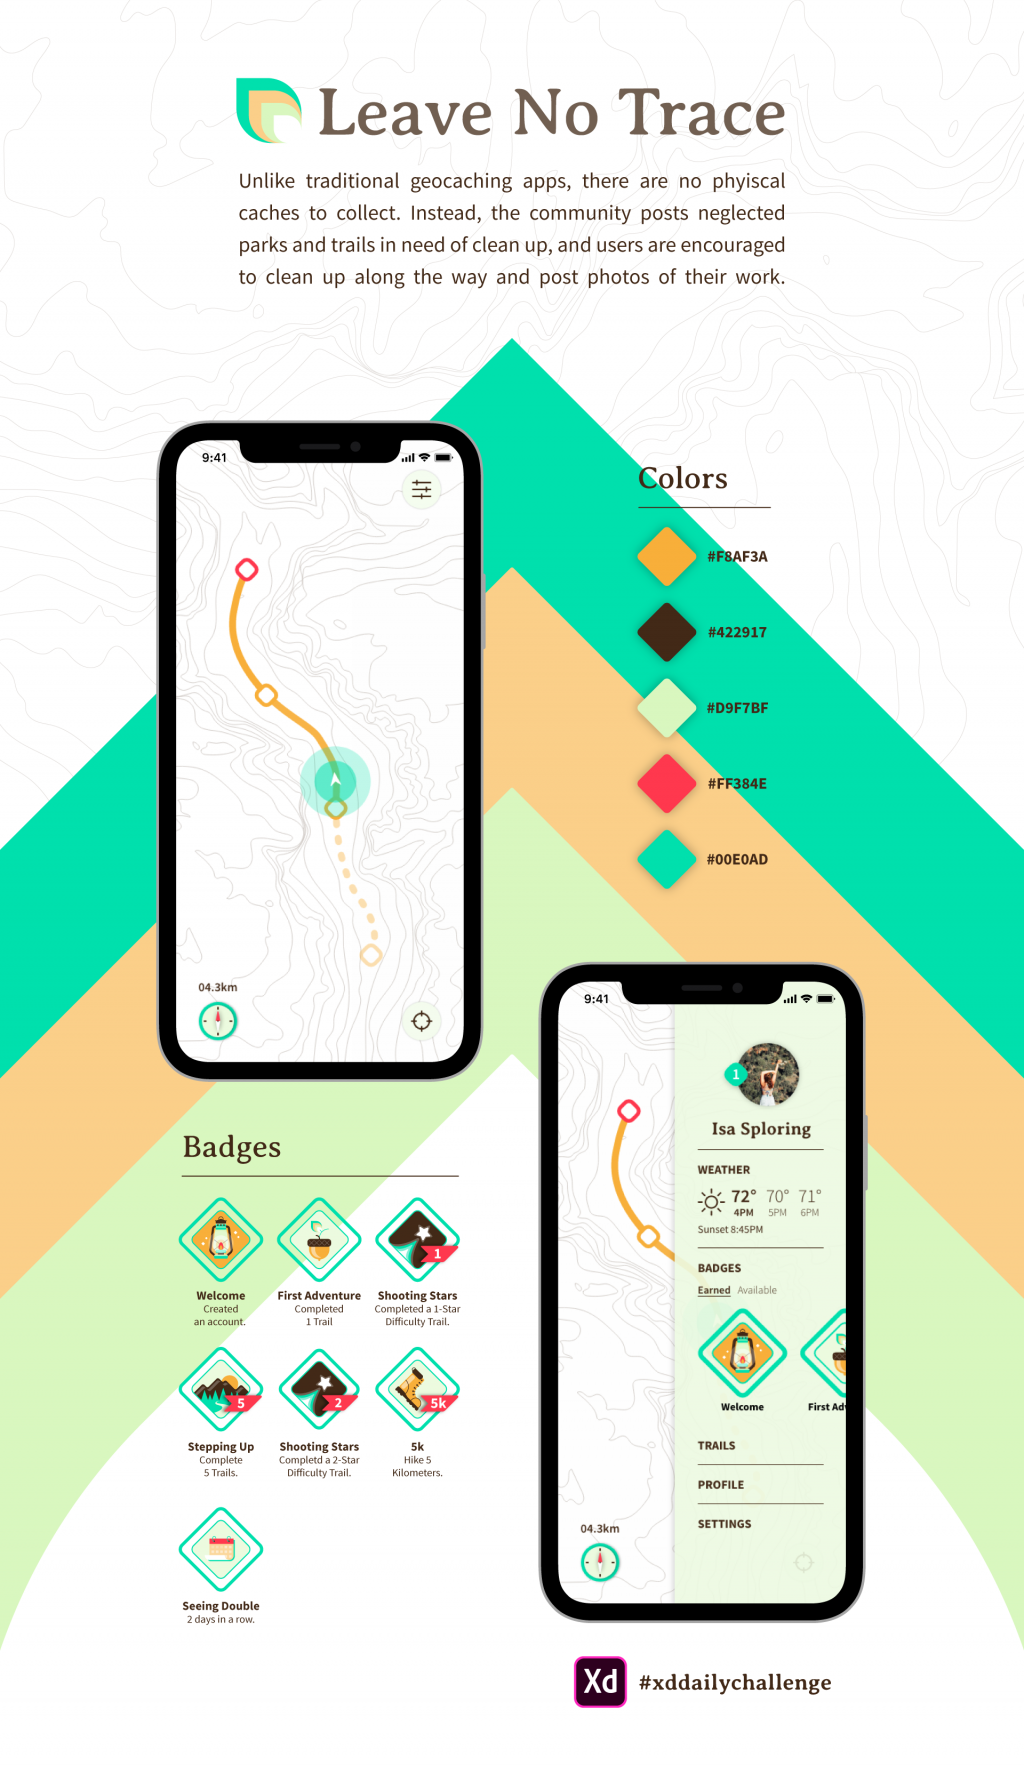 Mockup for a design for a geocaching app.